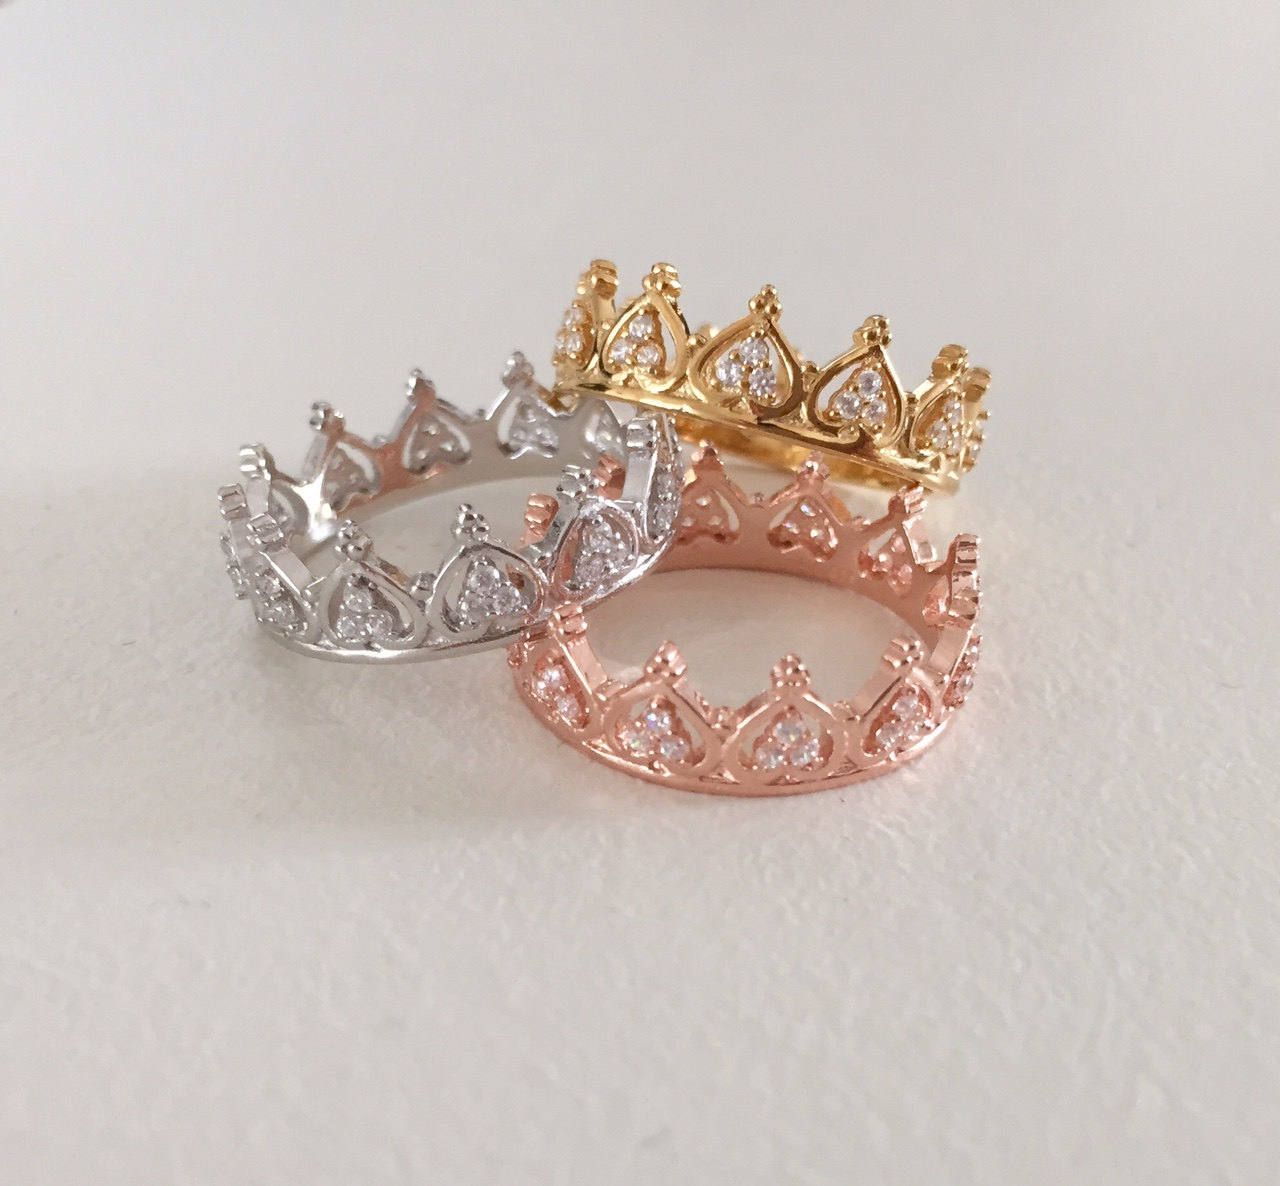 Princess Crown Ring – Tiara Ring – Stackable | Ringscollection Within Most Current Princess Tiara Crown Rings (View 2 of 25)